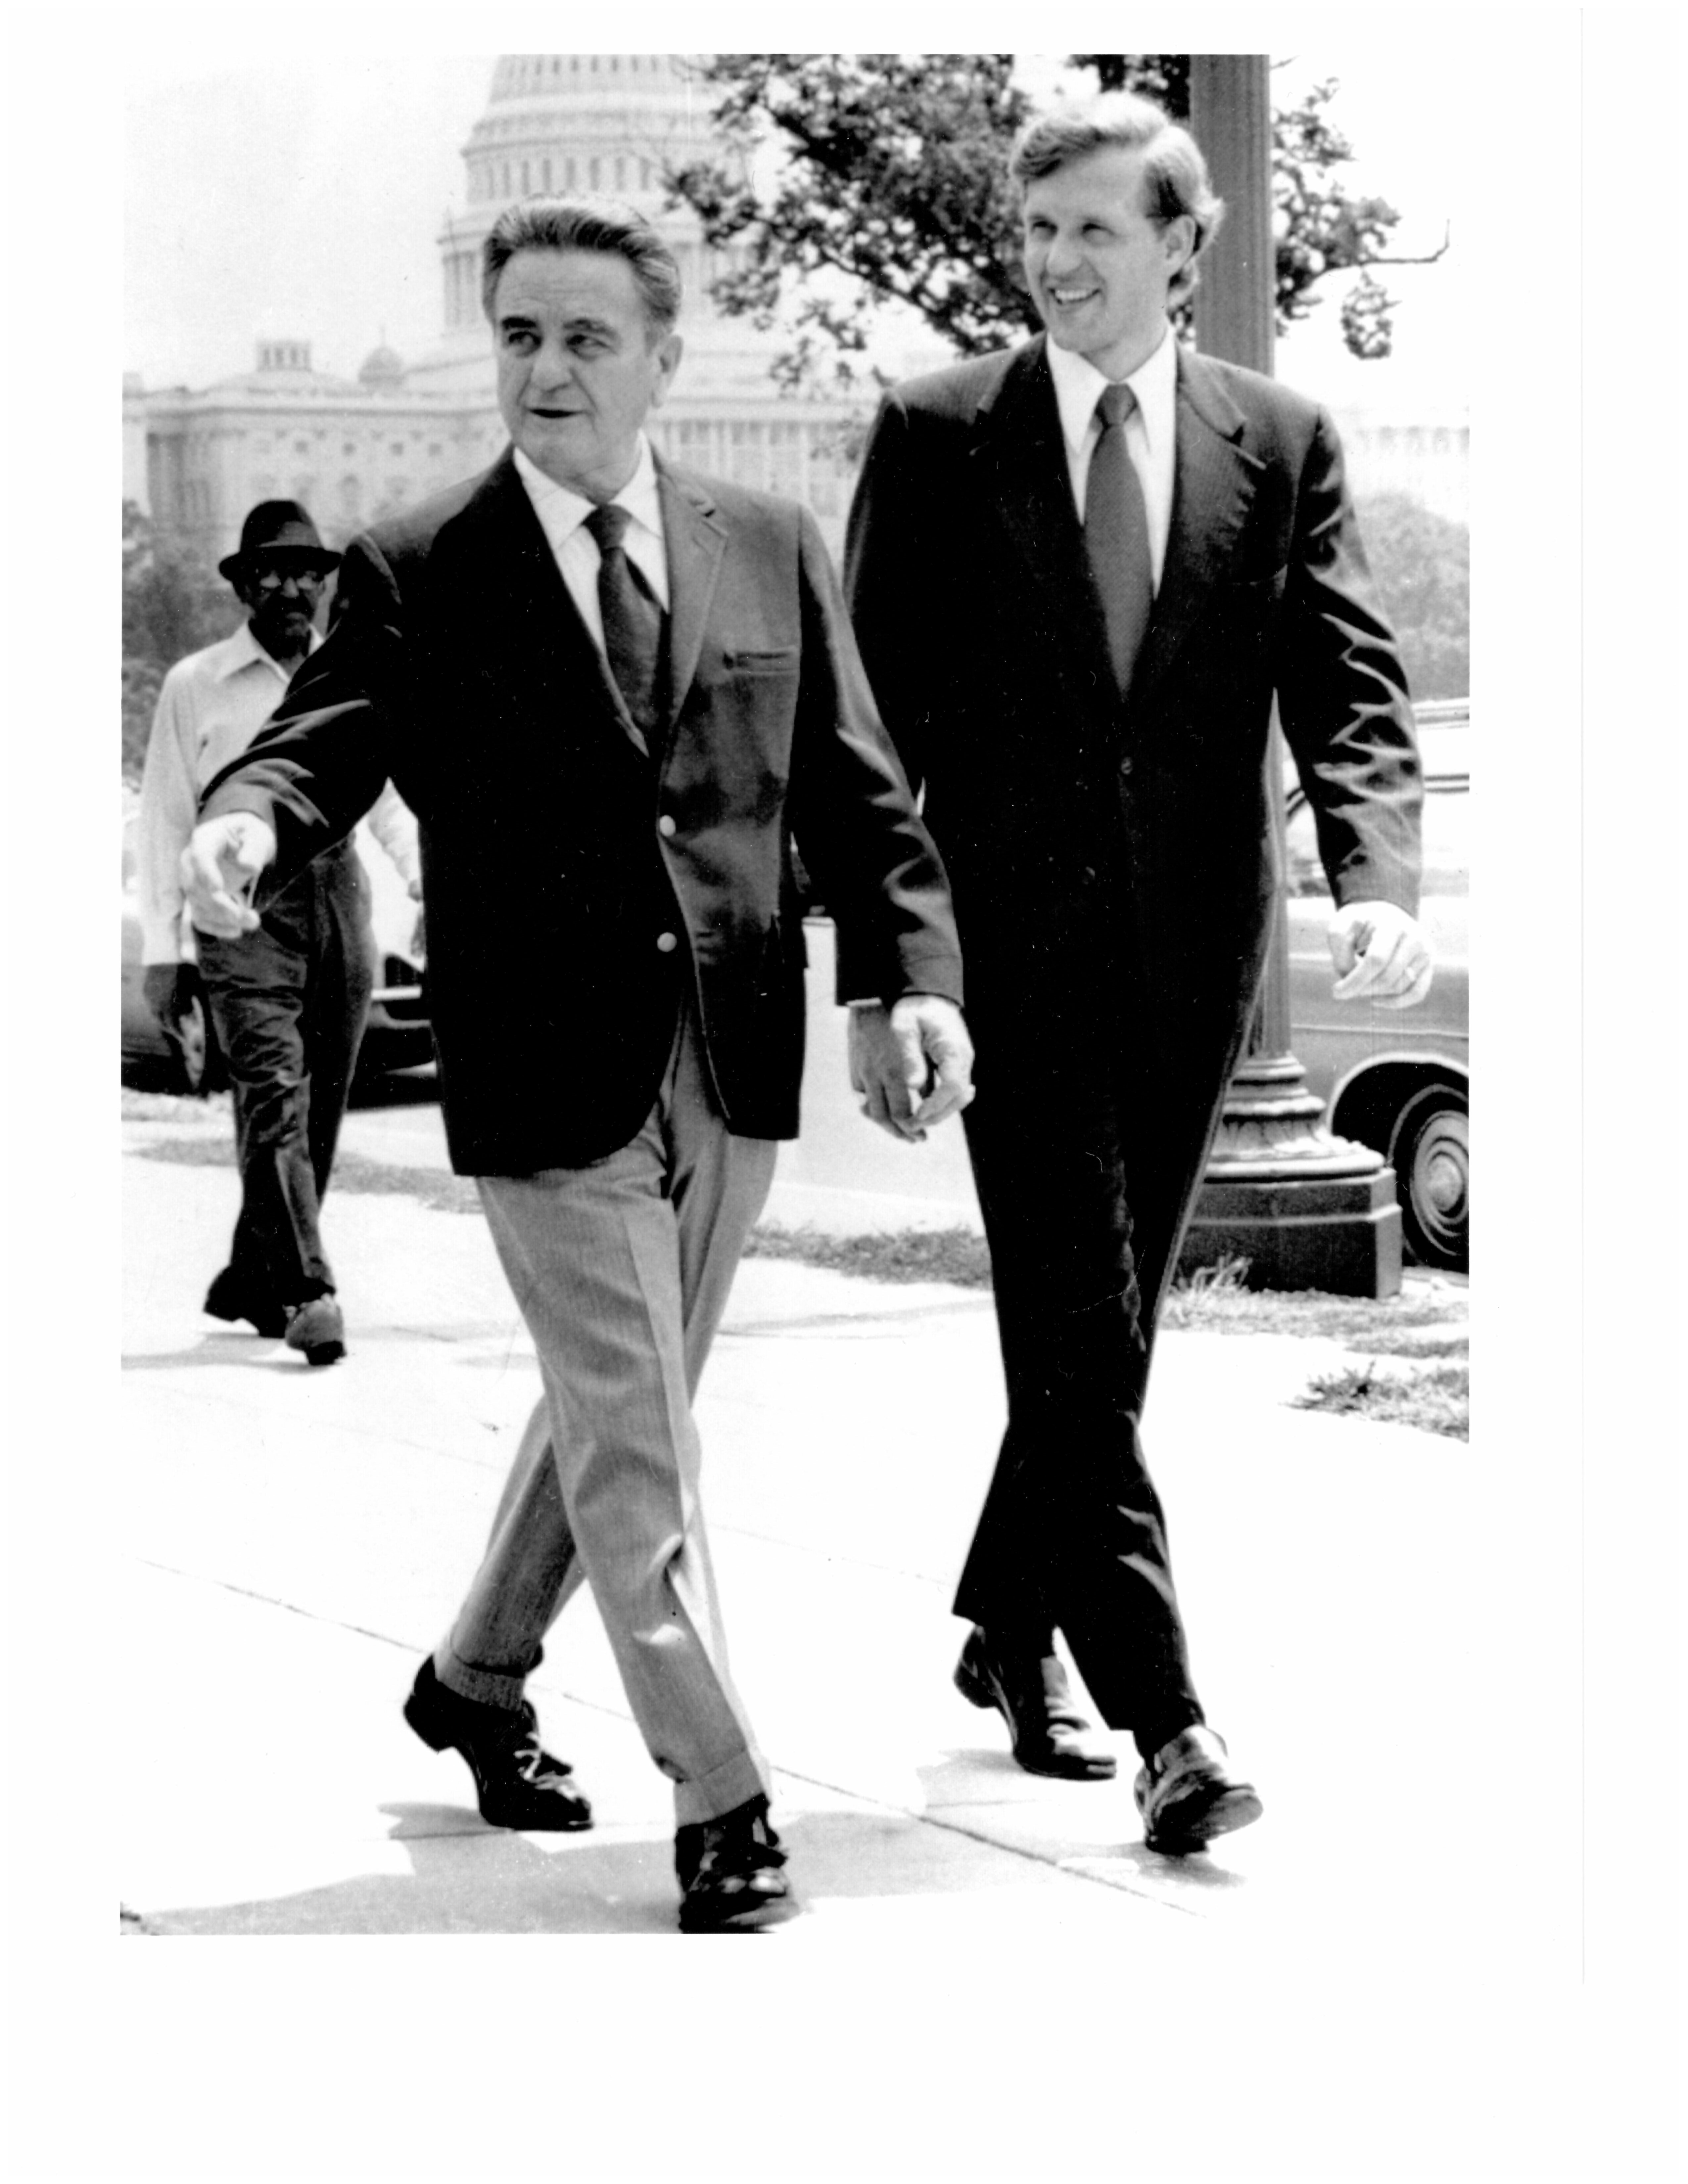 Elder D. Todd Christofferson of the Quorum of the Twelve Apostles with Judge John Sirica of the United States District Court in Washington, D.C. in the early 1970s. Elder Christofferson was Judge Sirica's law clerk during the Watergate trials.